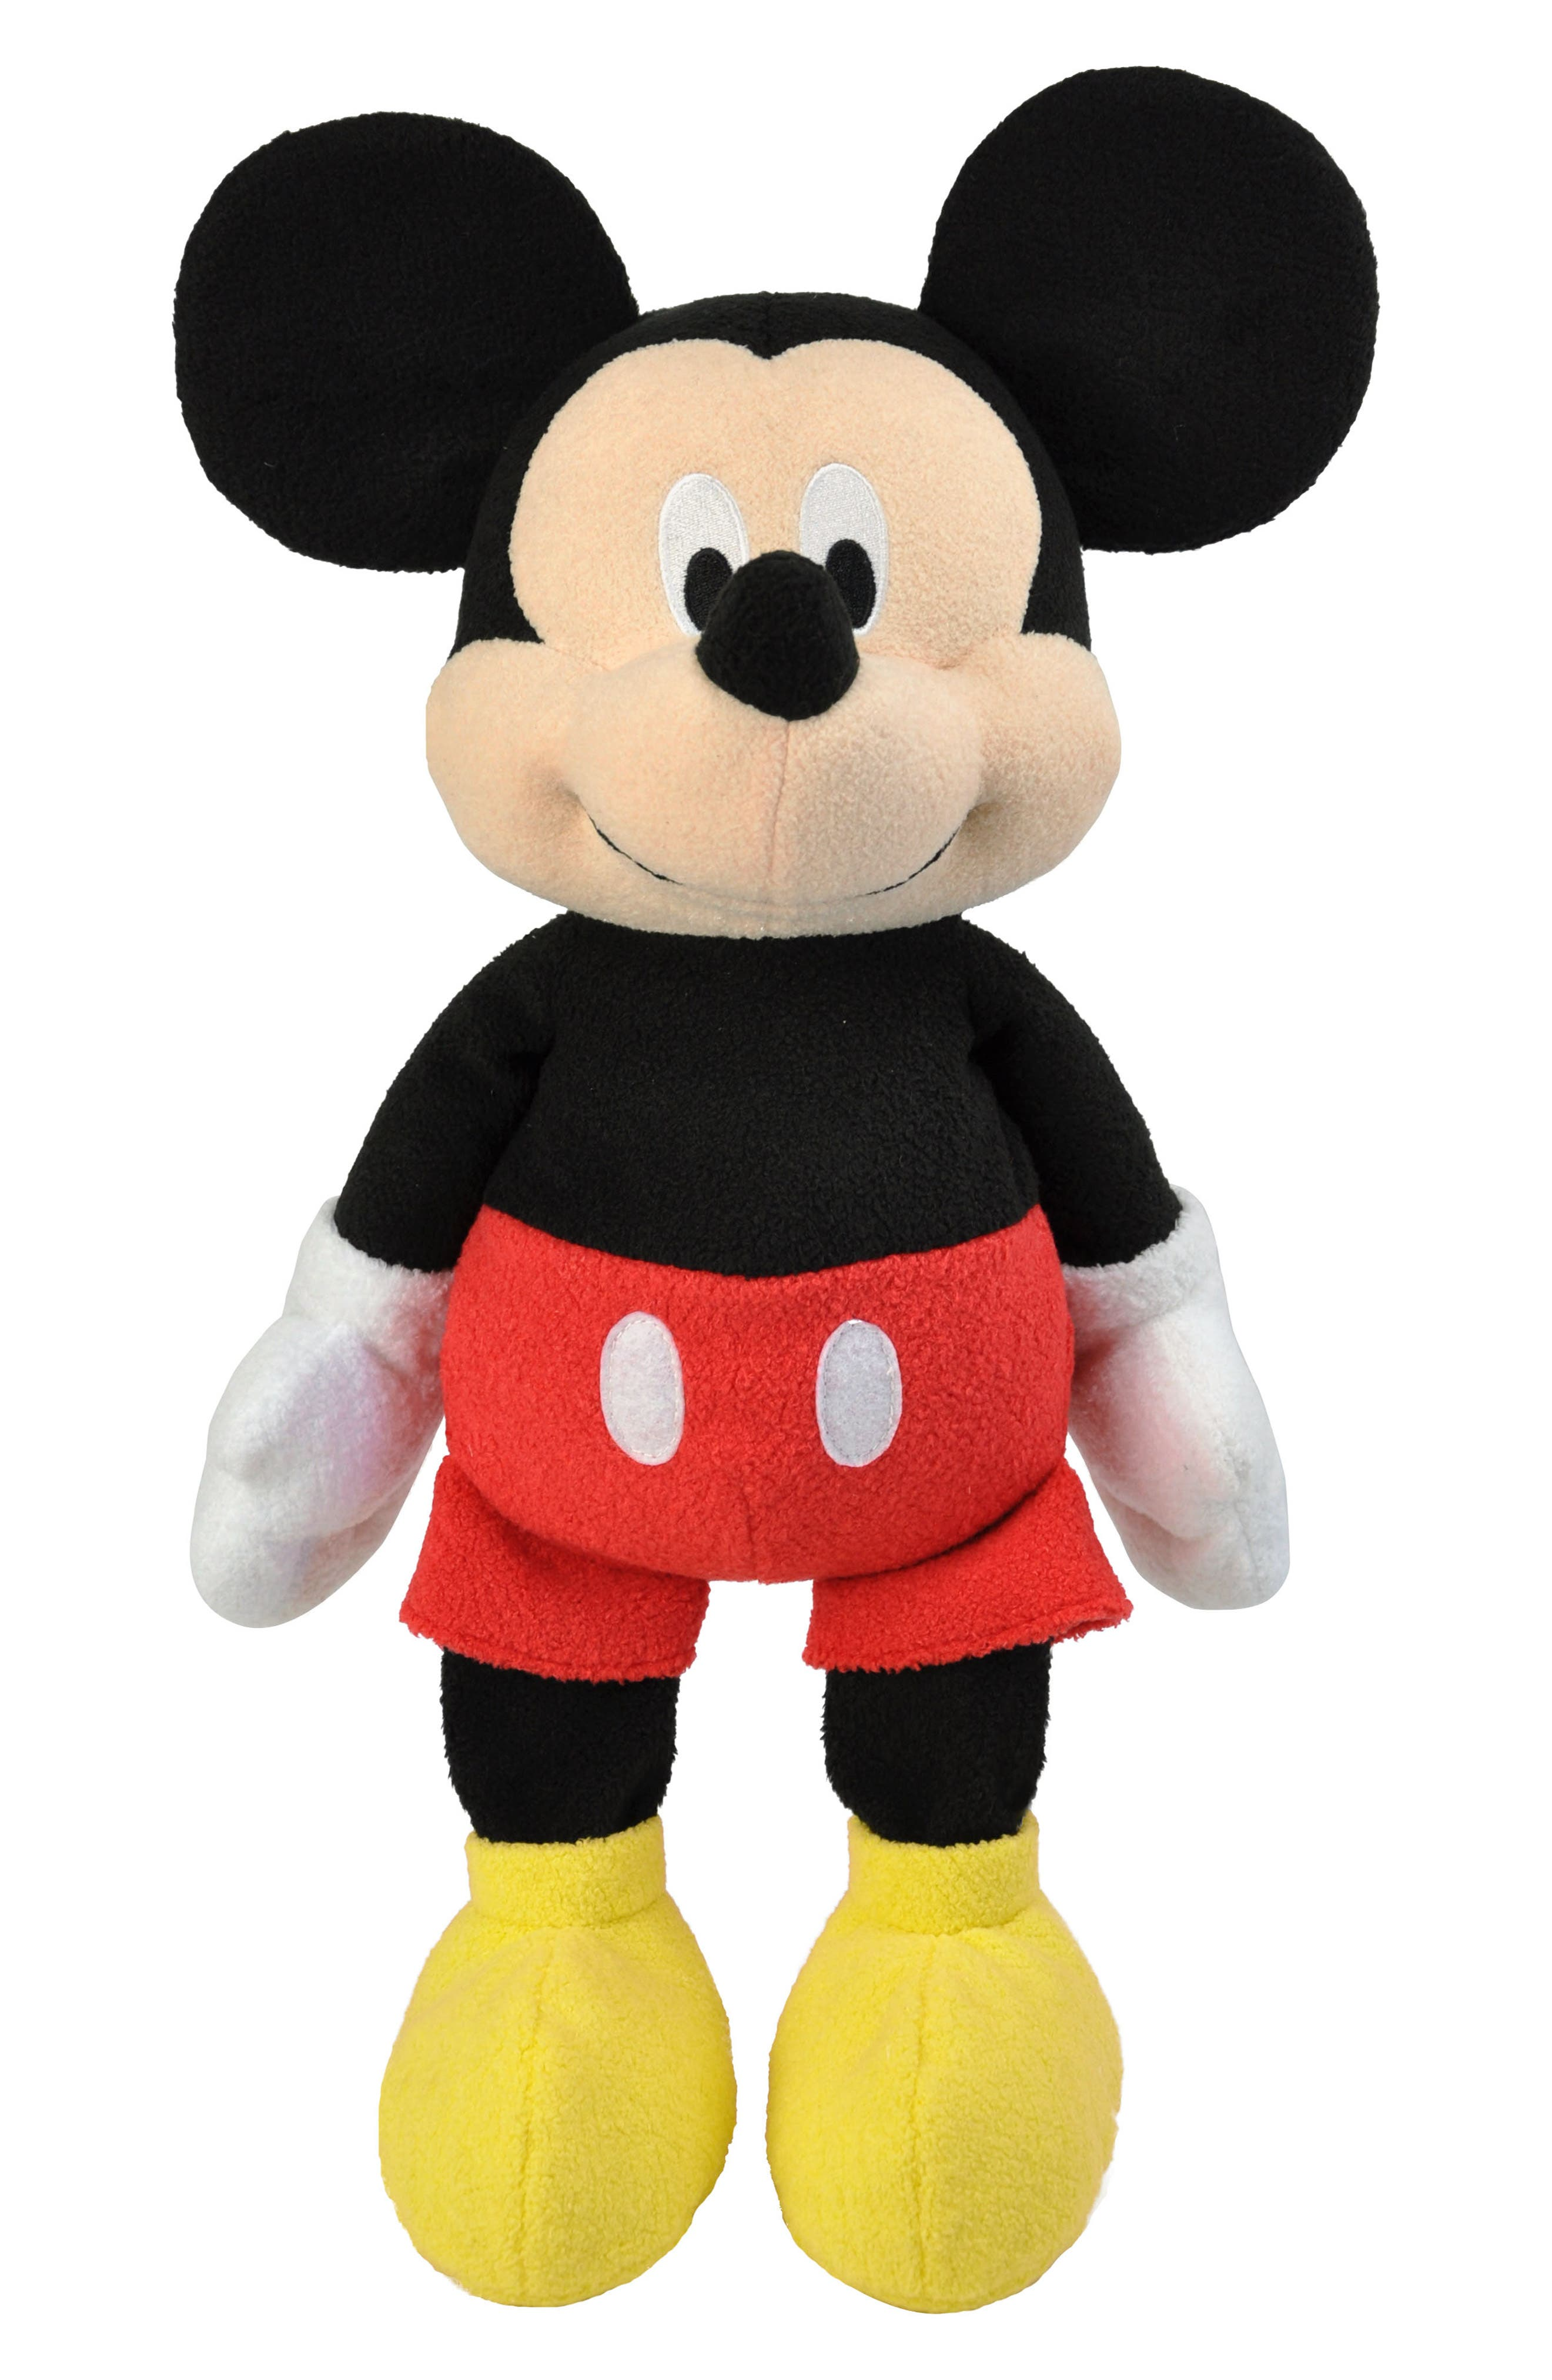 Mickey Mouse Floppy Plush Toy,                             Main thumbnail 1, color,                             MULTICOLOR